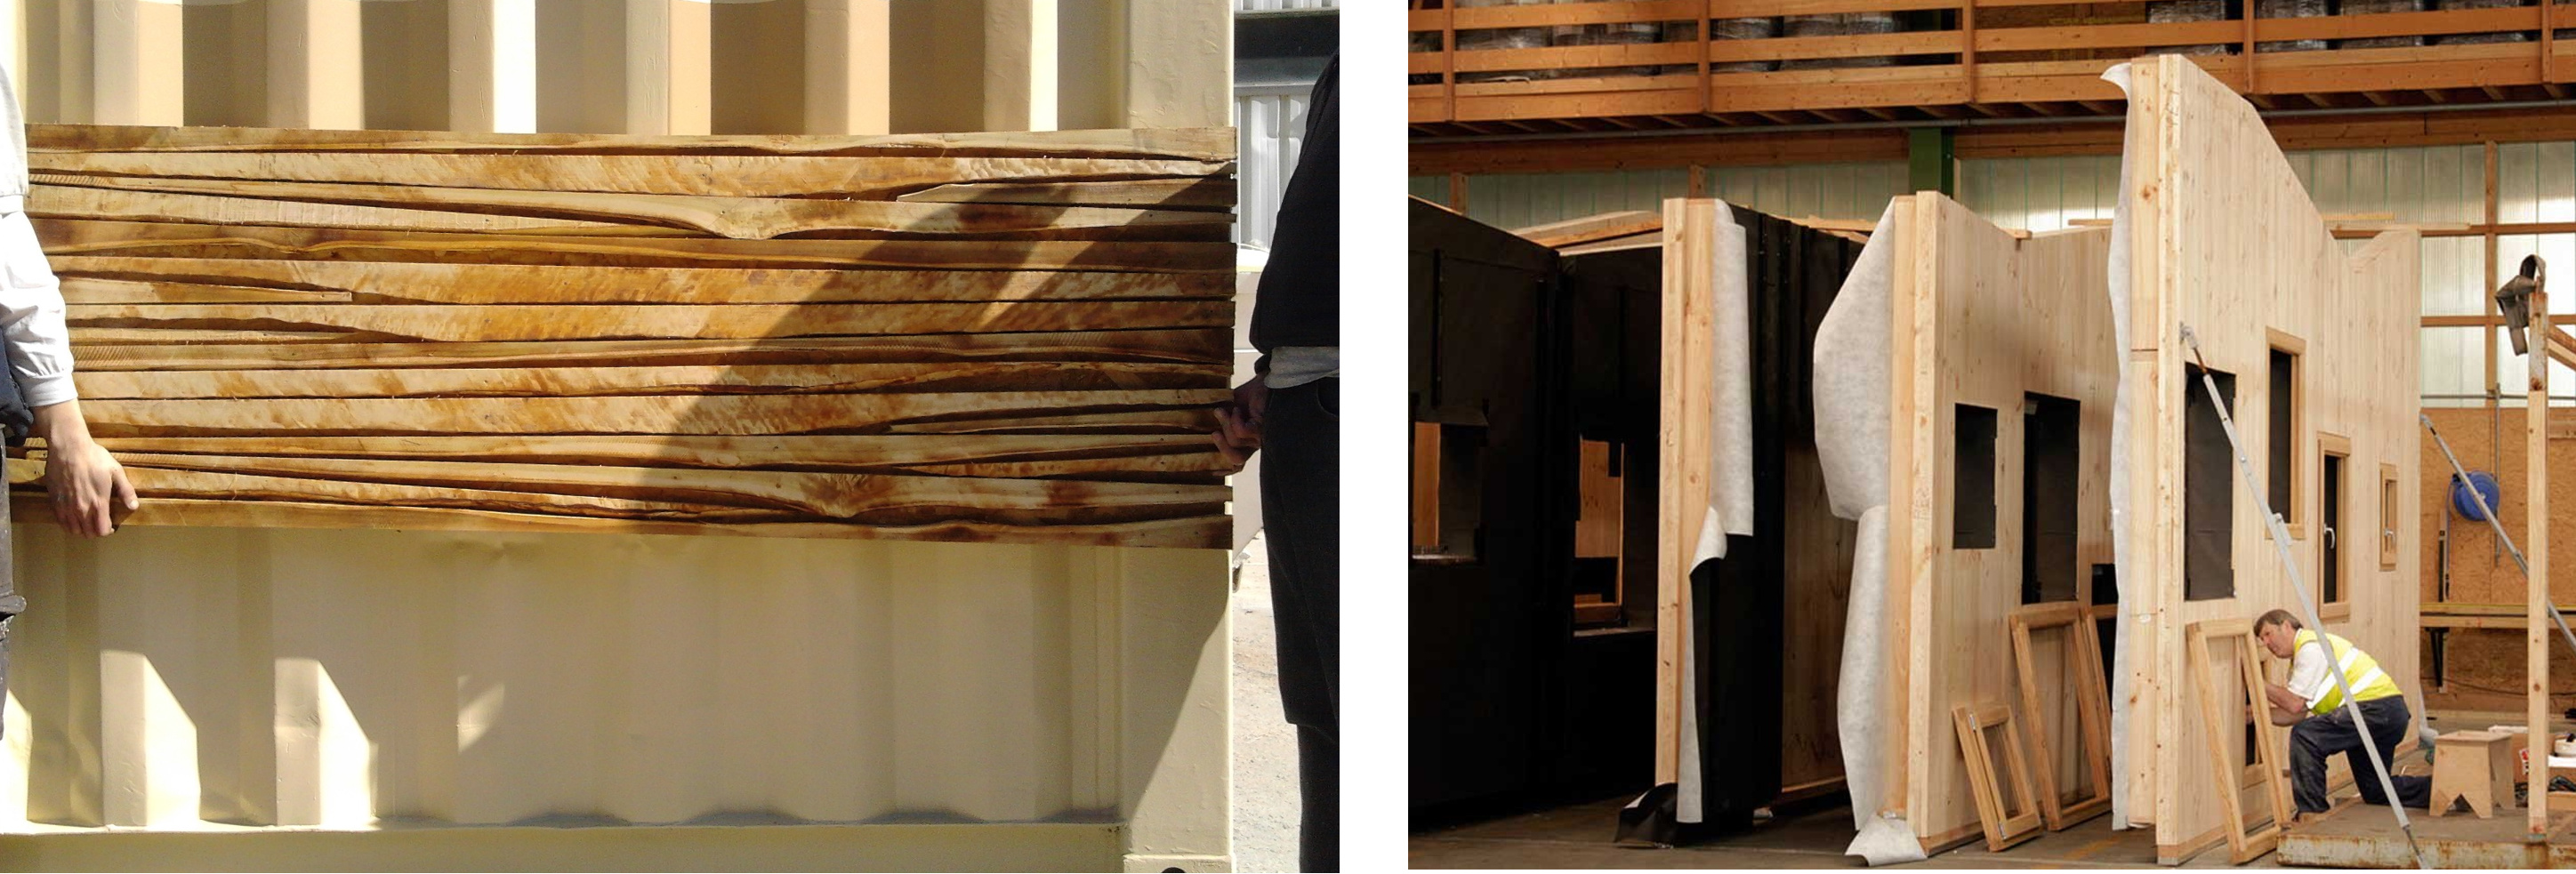 Test of façade with surplus wood on ISO container (Straddle3) and assembly workshop of two-dimensional panels (Egoin)